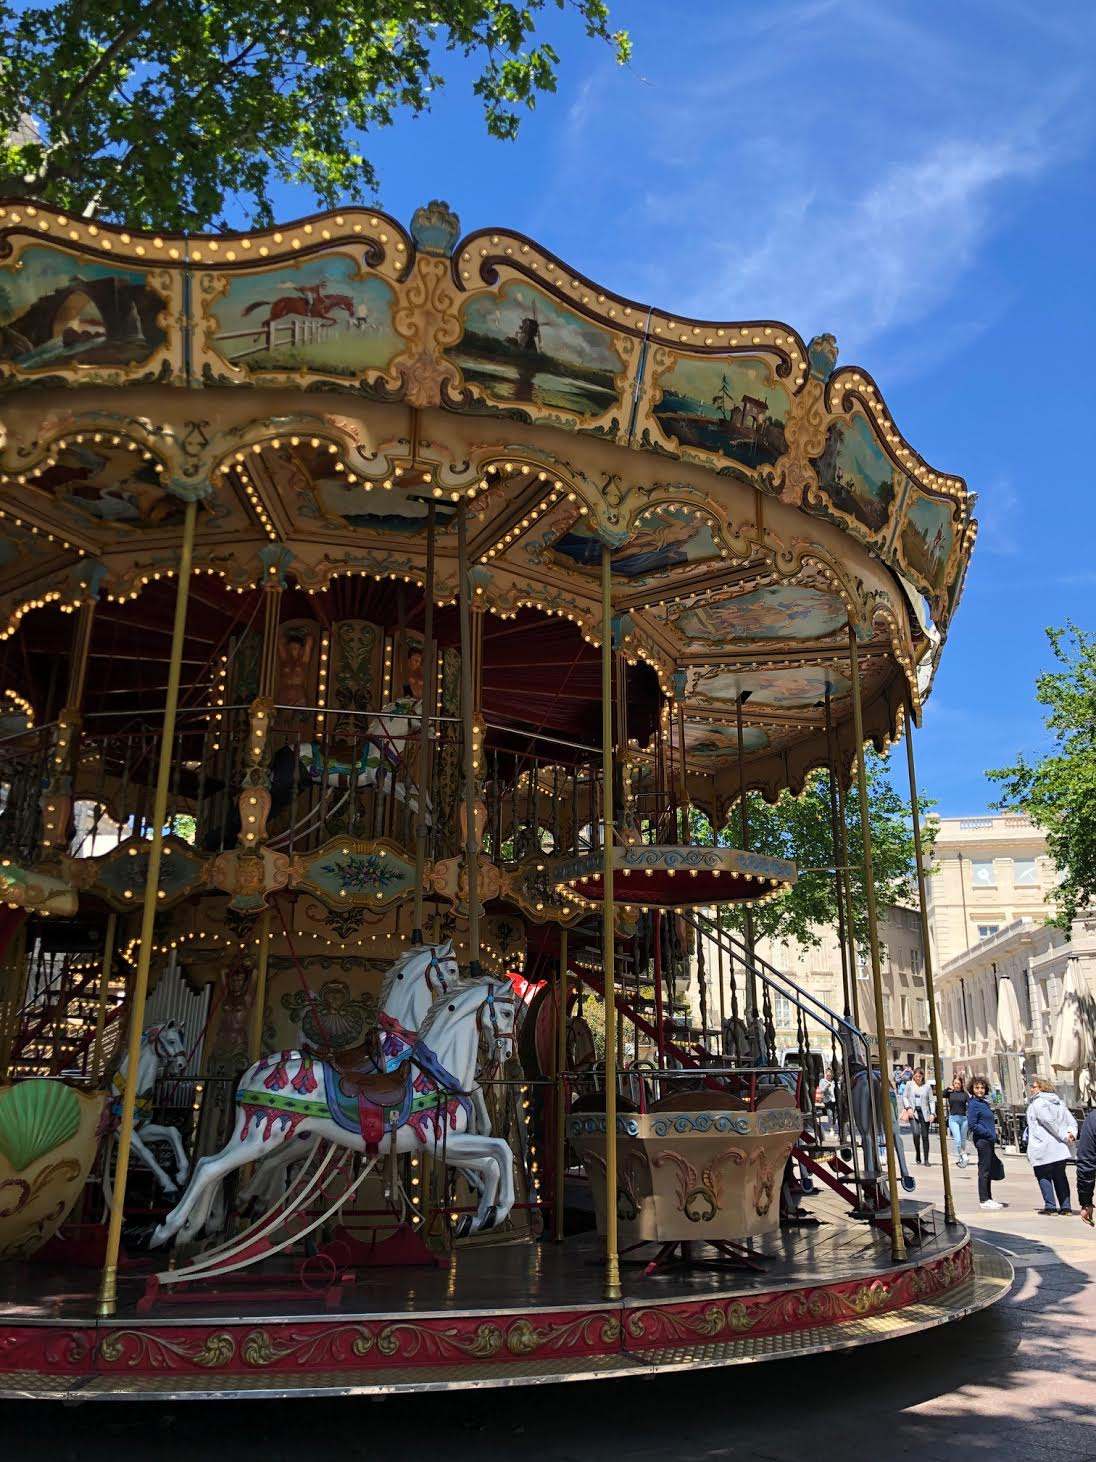 A stop in charming Avignon, France